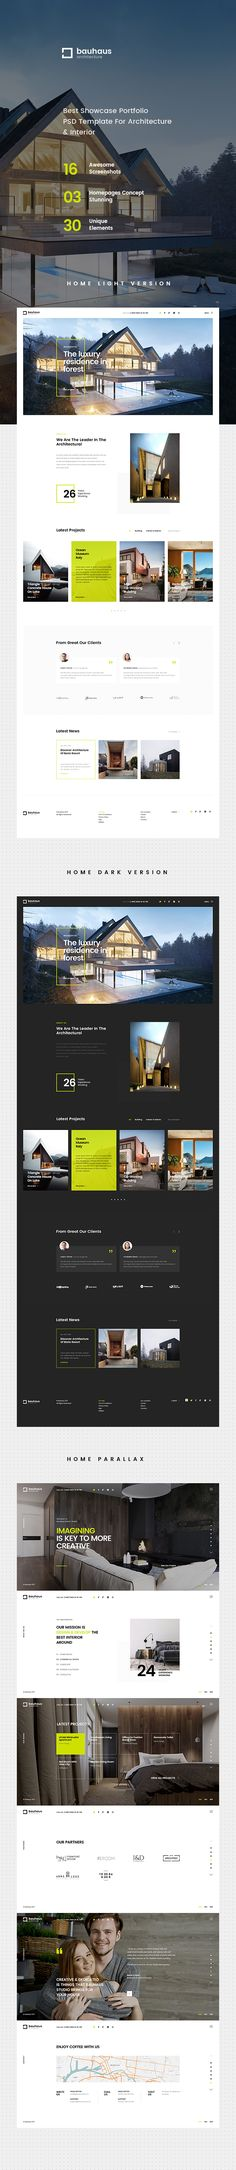 Bauhaus is evaluated an unique & trendy PSD #theme for #architecture & interior #design company website with 3 homepage layout and 16 organized PSD pages download now➩ https://themeforest.net/item/bauhaus-architecture-interior-psd-template/19480070?ref=Datasata